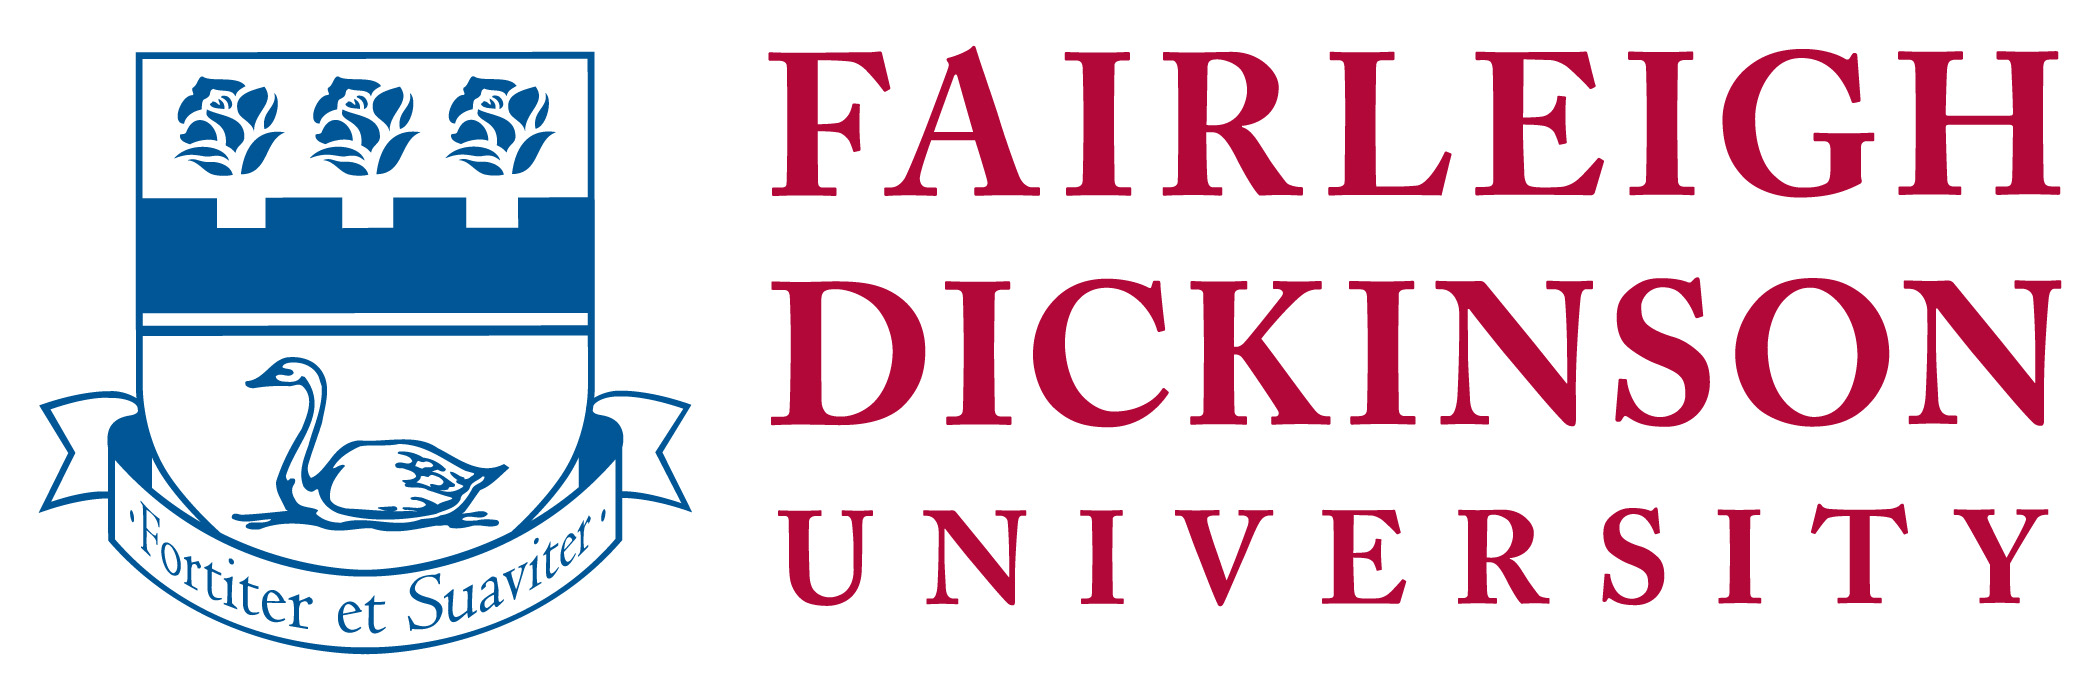 Fairleigh-Dickinson-University-logo-page